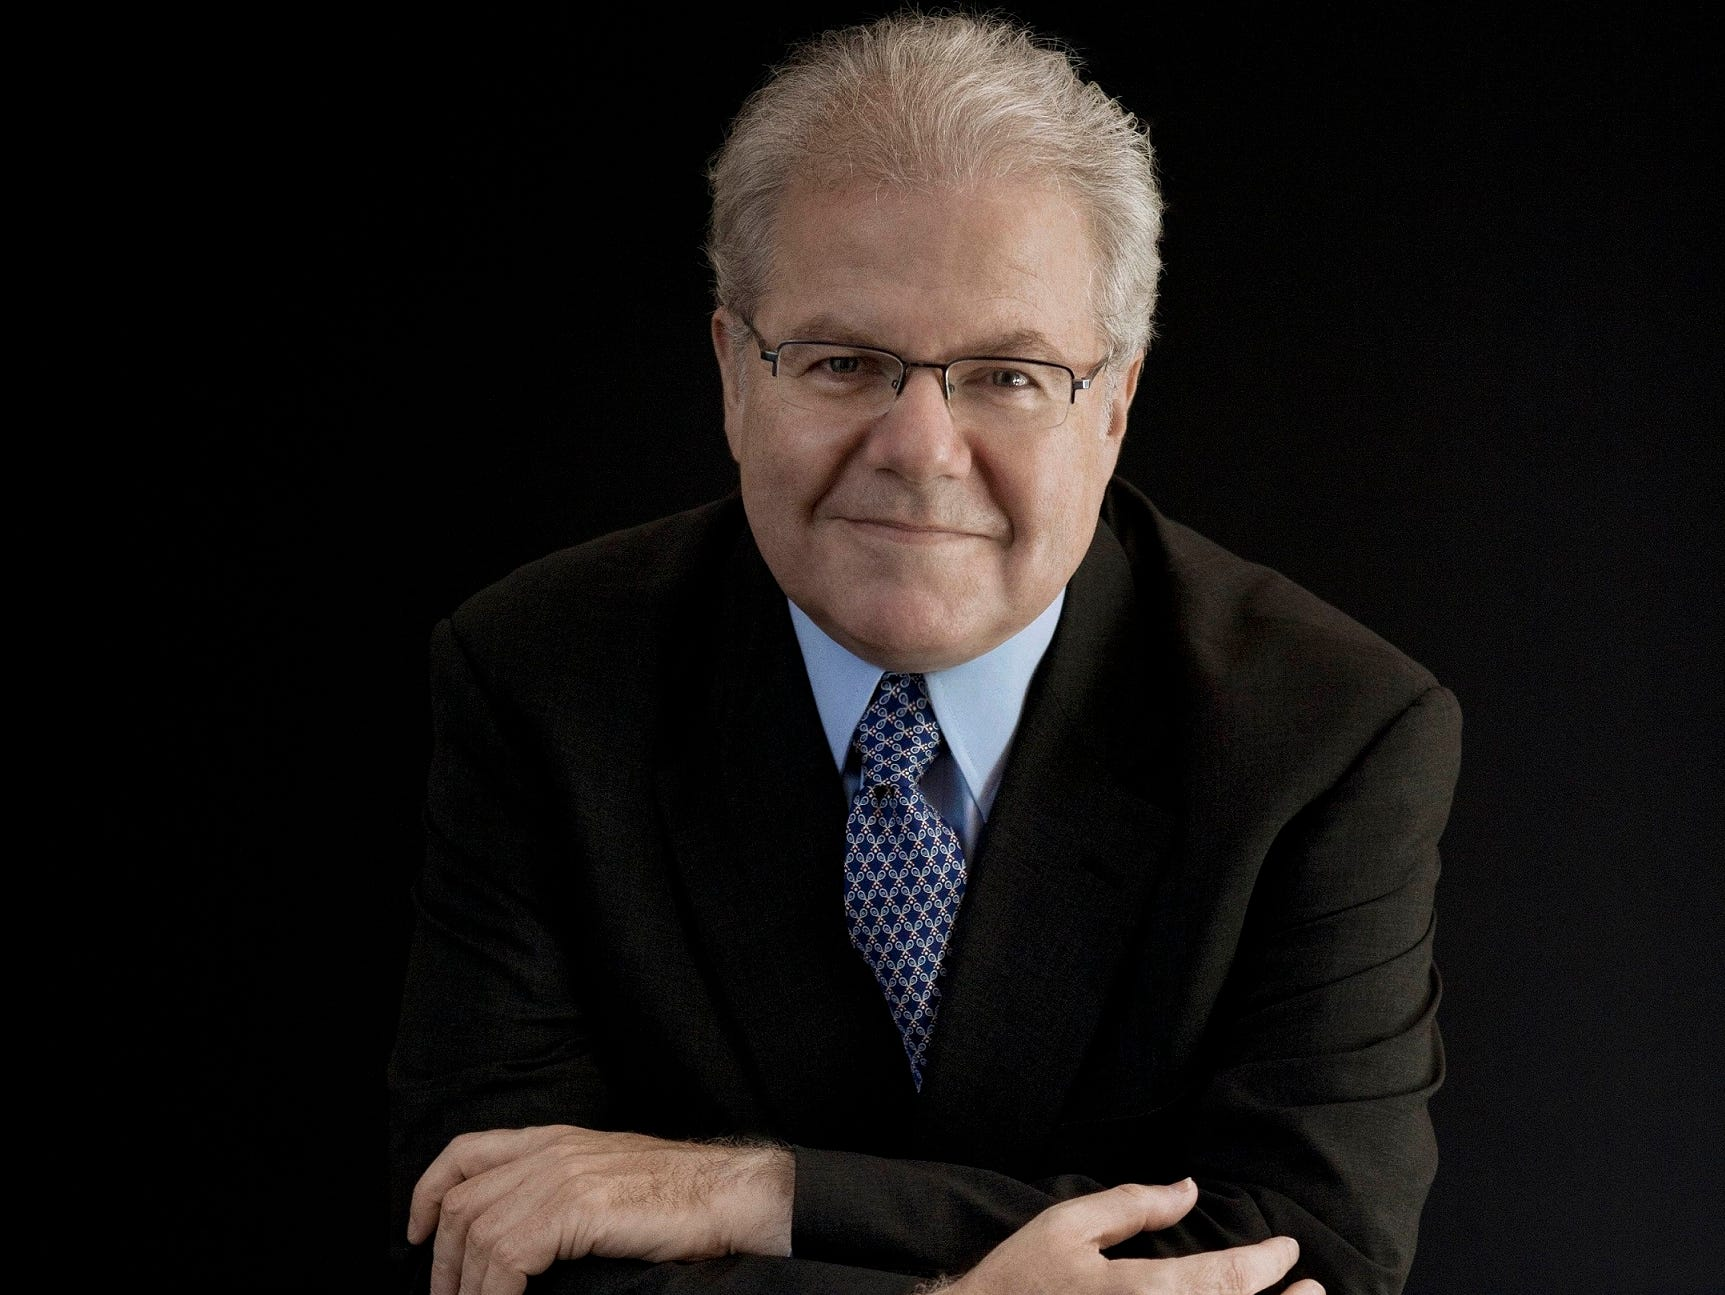 """Grammy Award-winning pianist Emanuel Ax has been a mainstay of the international concert stage for more than 50 years. He'll perform Mozart's much-loved """"Piano Concerto No. 20"""" with the CSO during the orchestra's 125th anniversary season."""